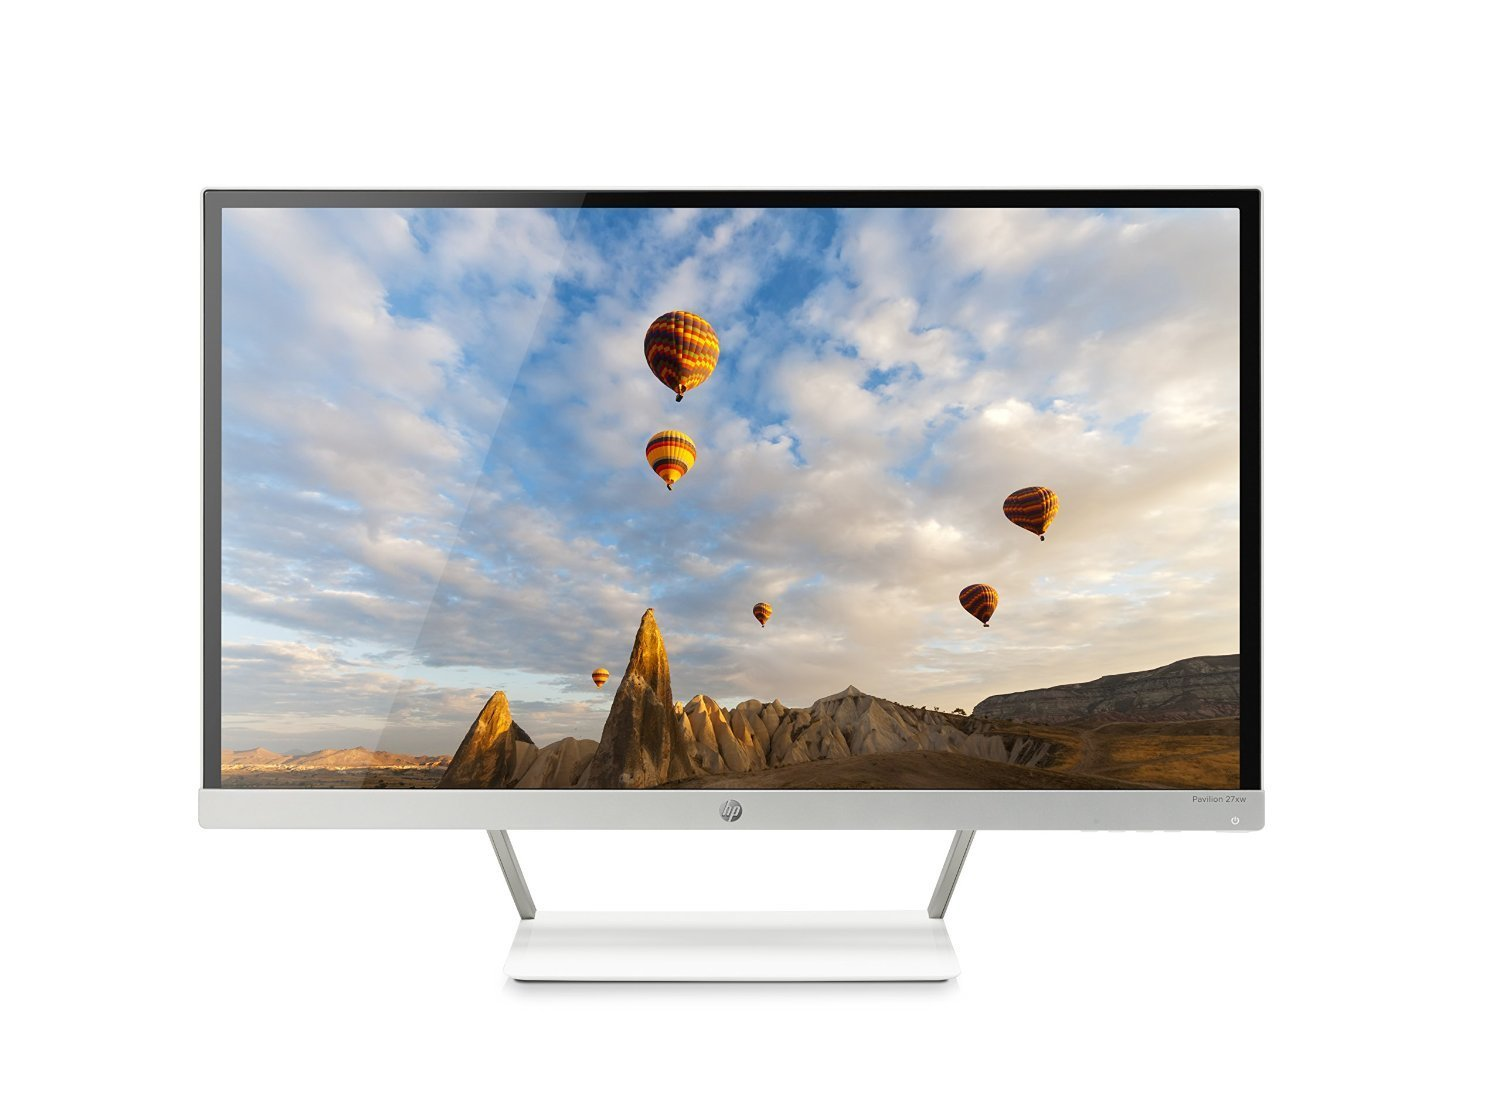 HP Pavilion 27xw 27-in IPS LED Backlit Monitor (Certified Refurbished)